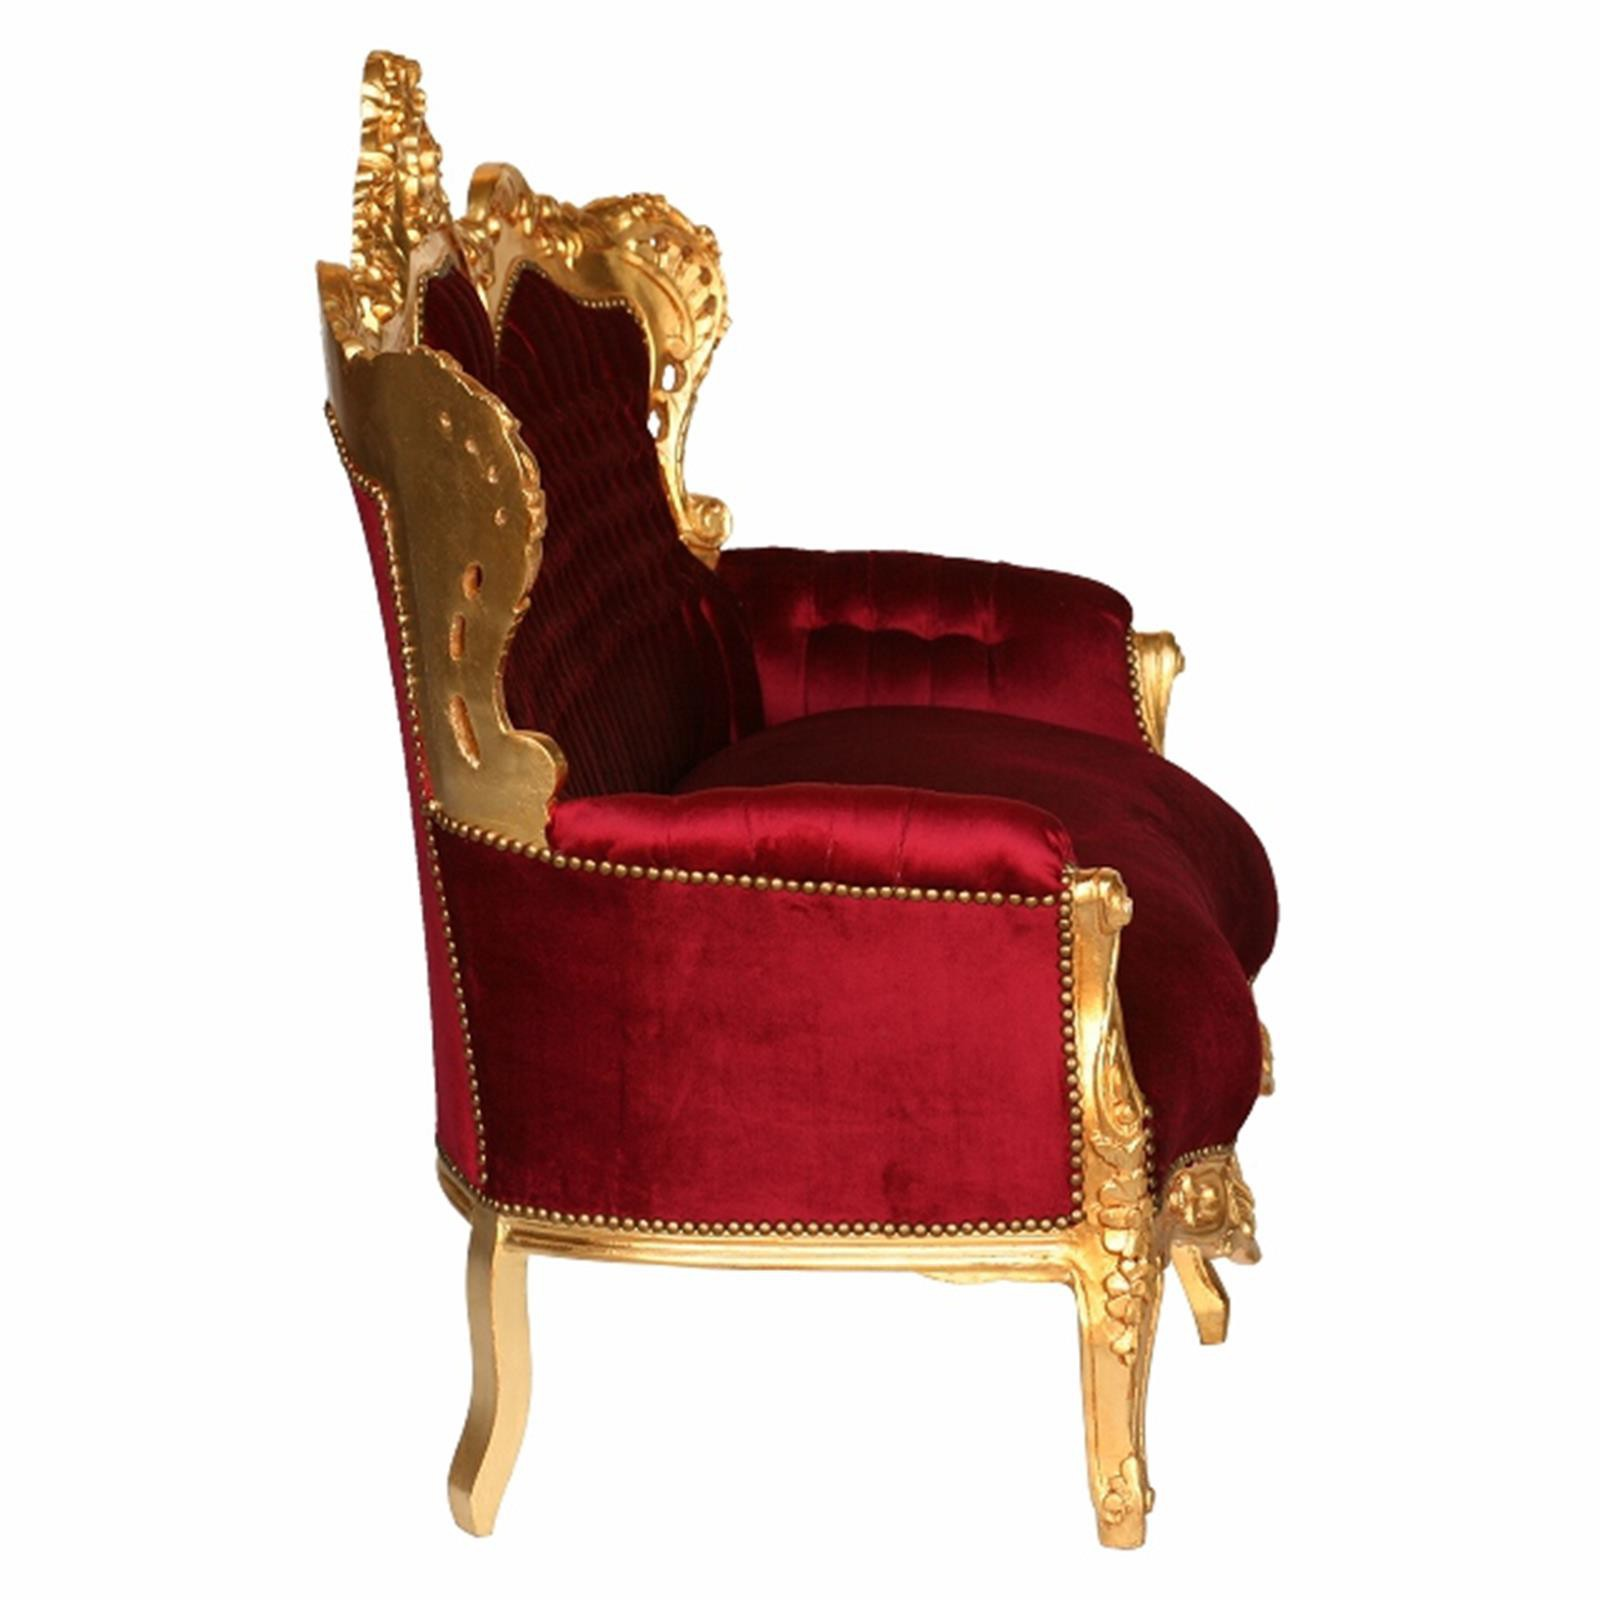 big sofa barock 3 sitzer couch bordeaux rot gold exklusiv k niglich antik stil. Black Bedroom Furniture Sets. Home Design Ideas